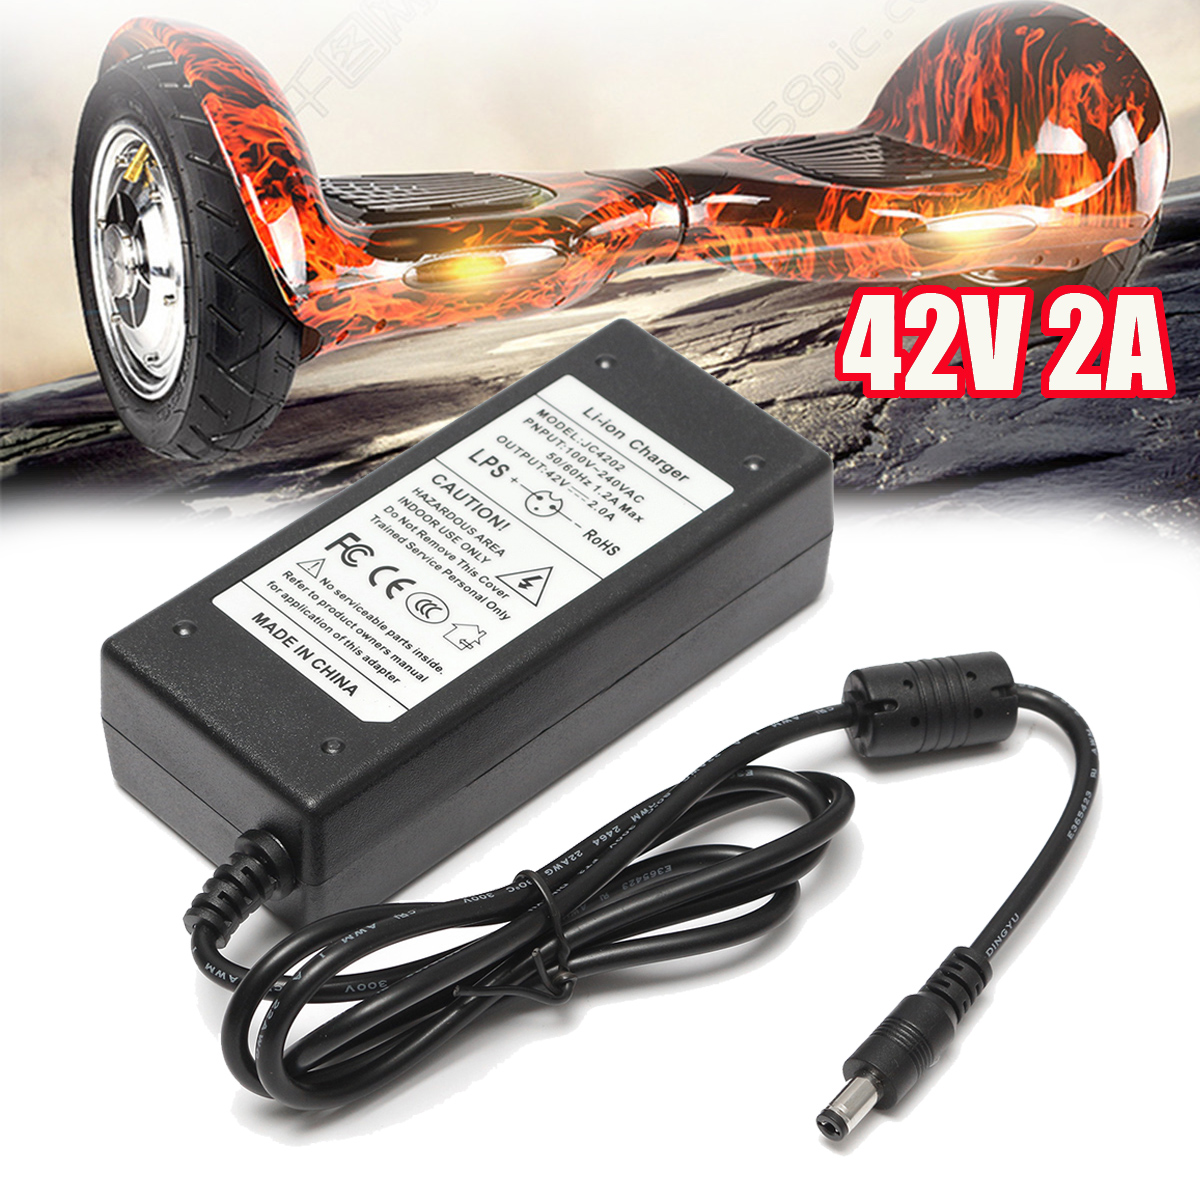 2A <font><b>42V</b></font> Power Charger <font><b>Adapter</b></font> For 36V Li-ion Lithium Battery Two-wheel Vehicle Chargers image